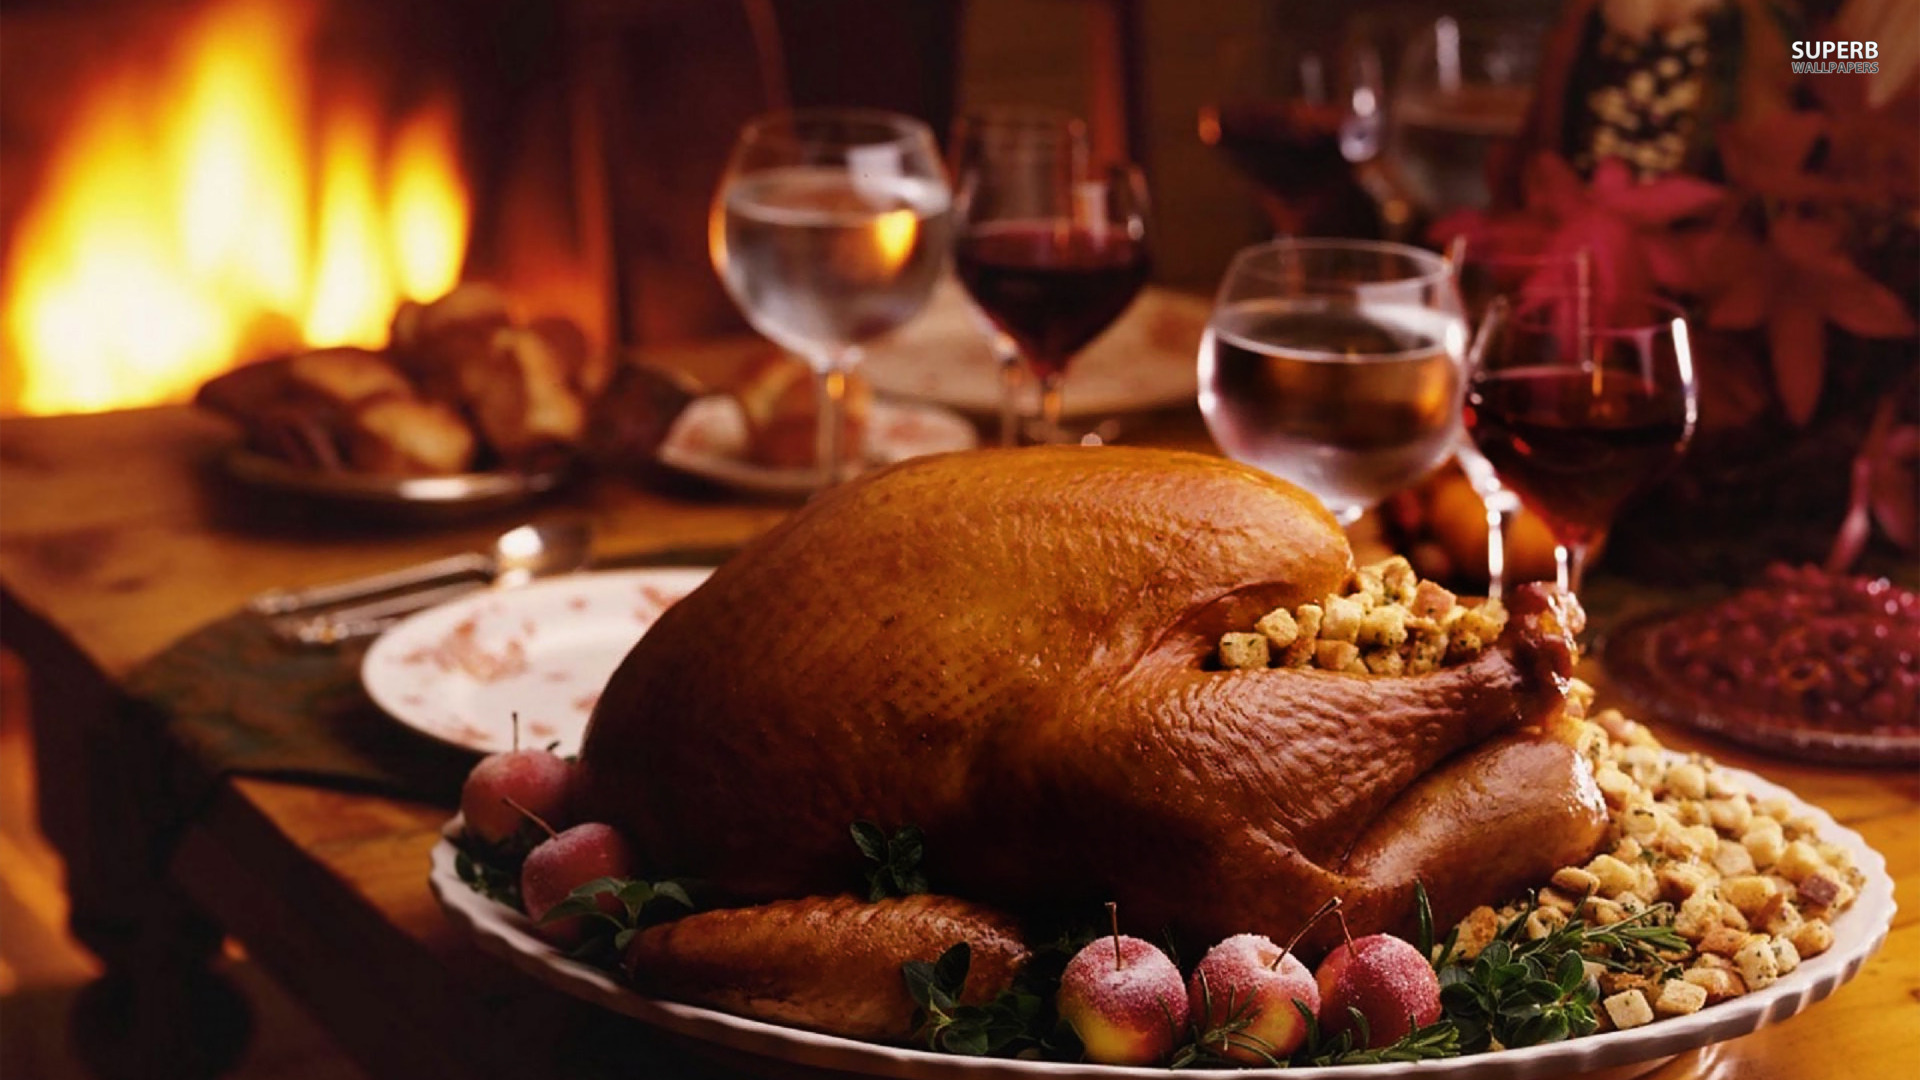 Thanksgiving Wallpaper 32 Wallpapers Adorable Wallpapers